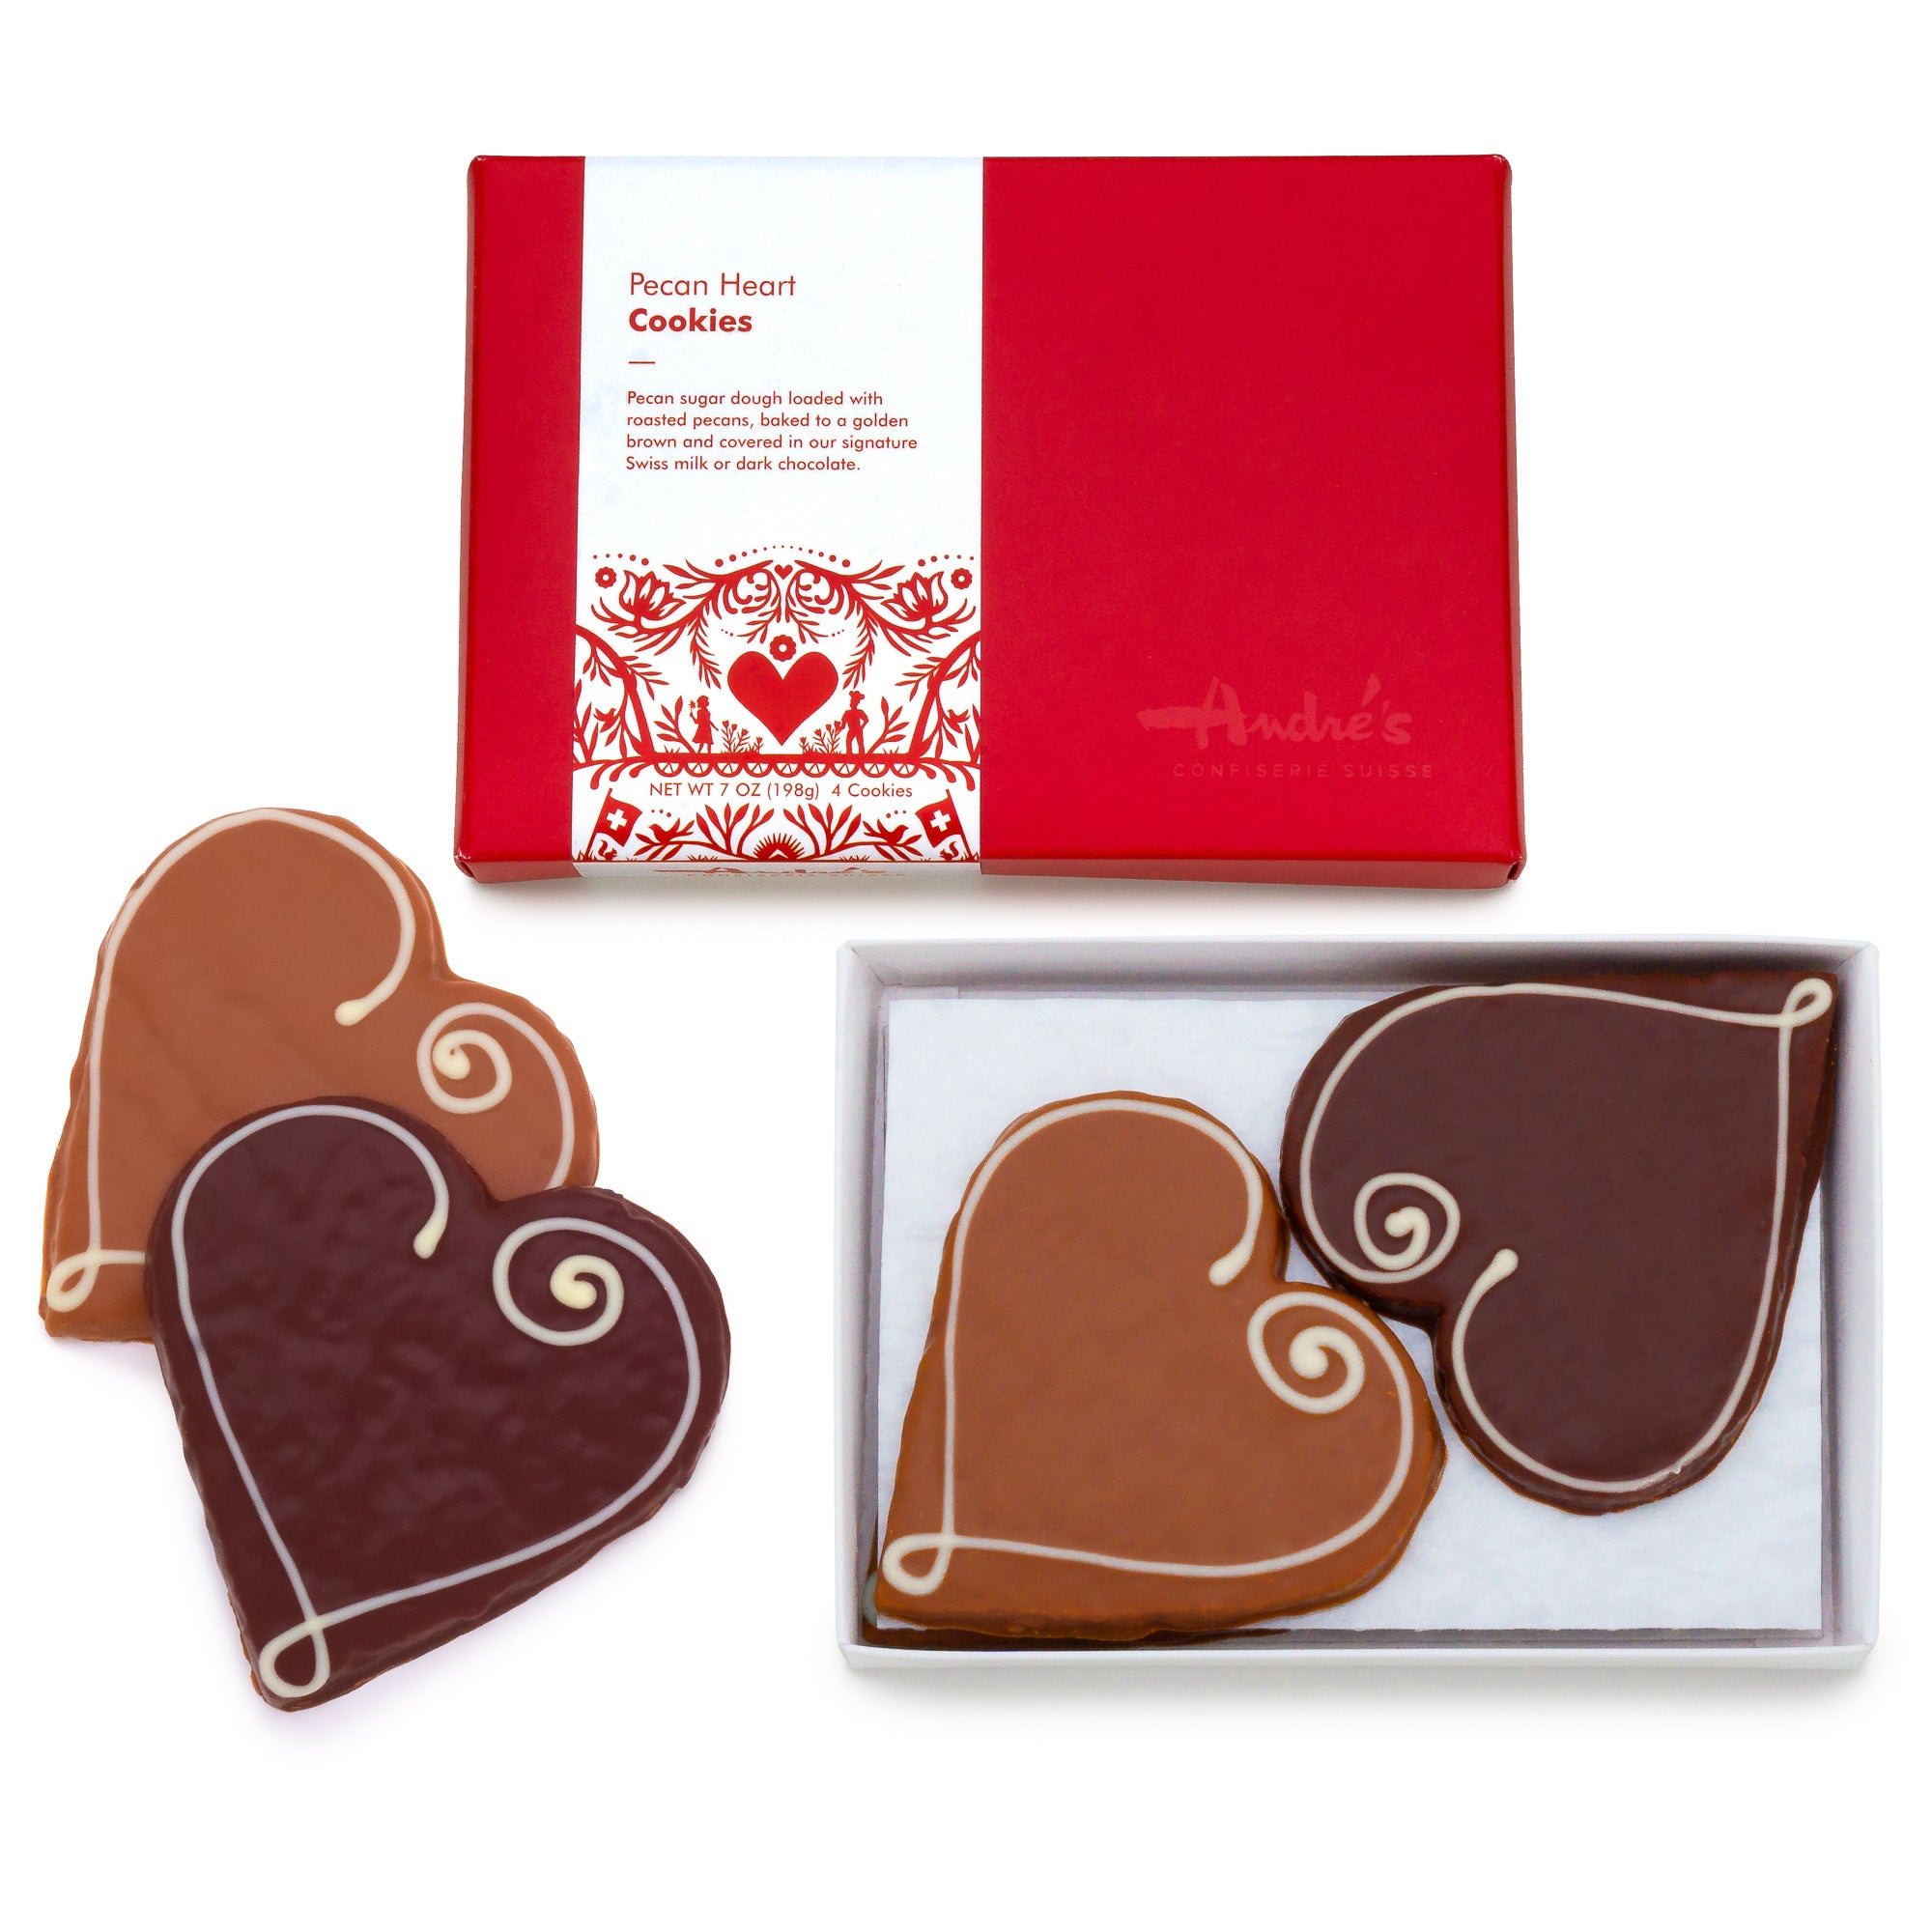 Pecan Heart Cookies (NEW PACKAGING)